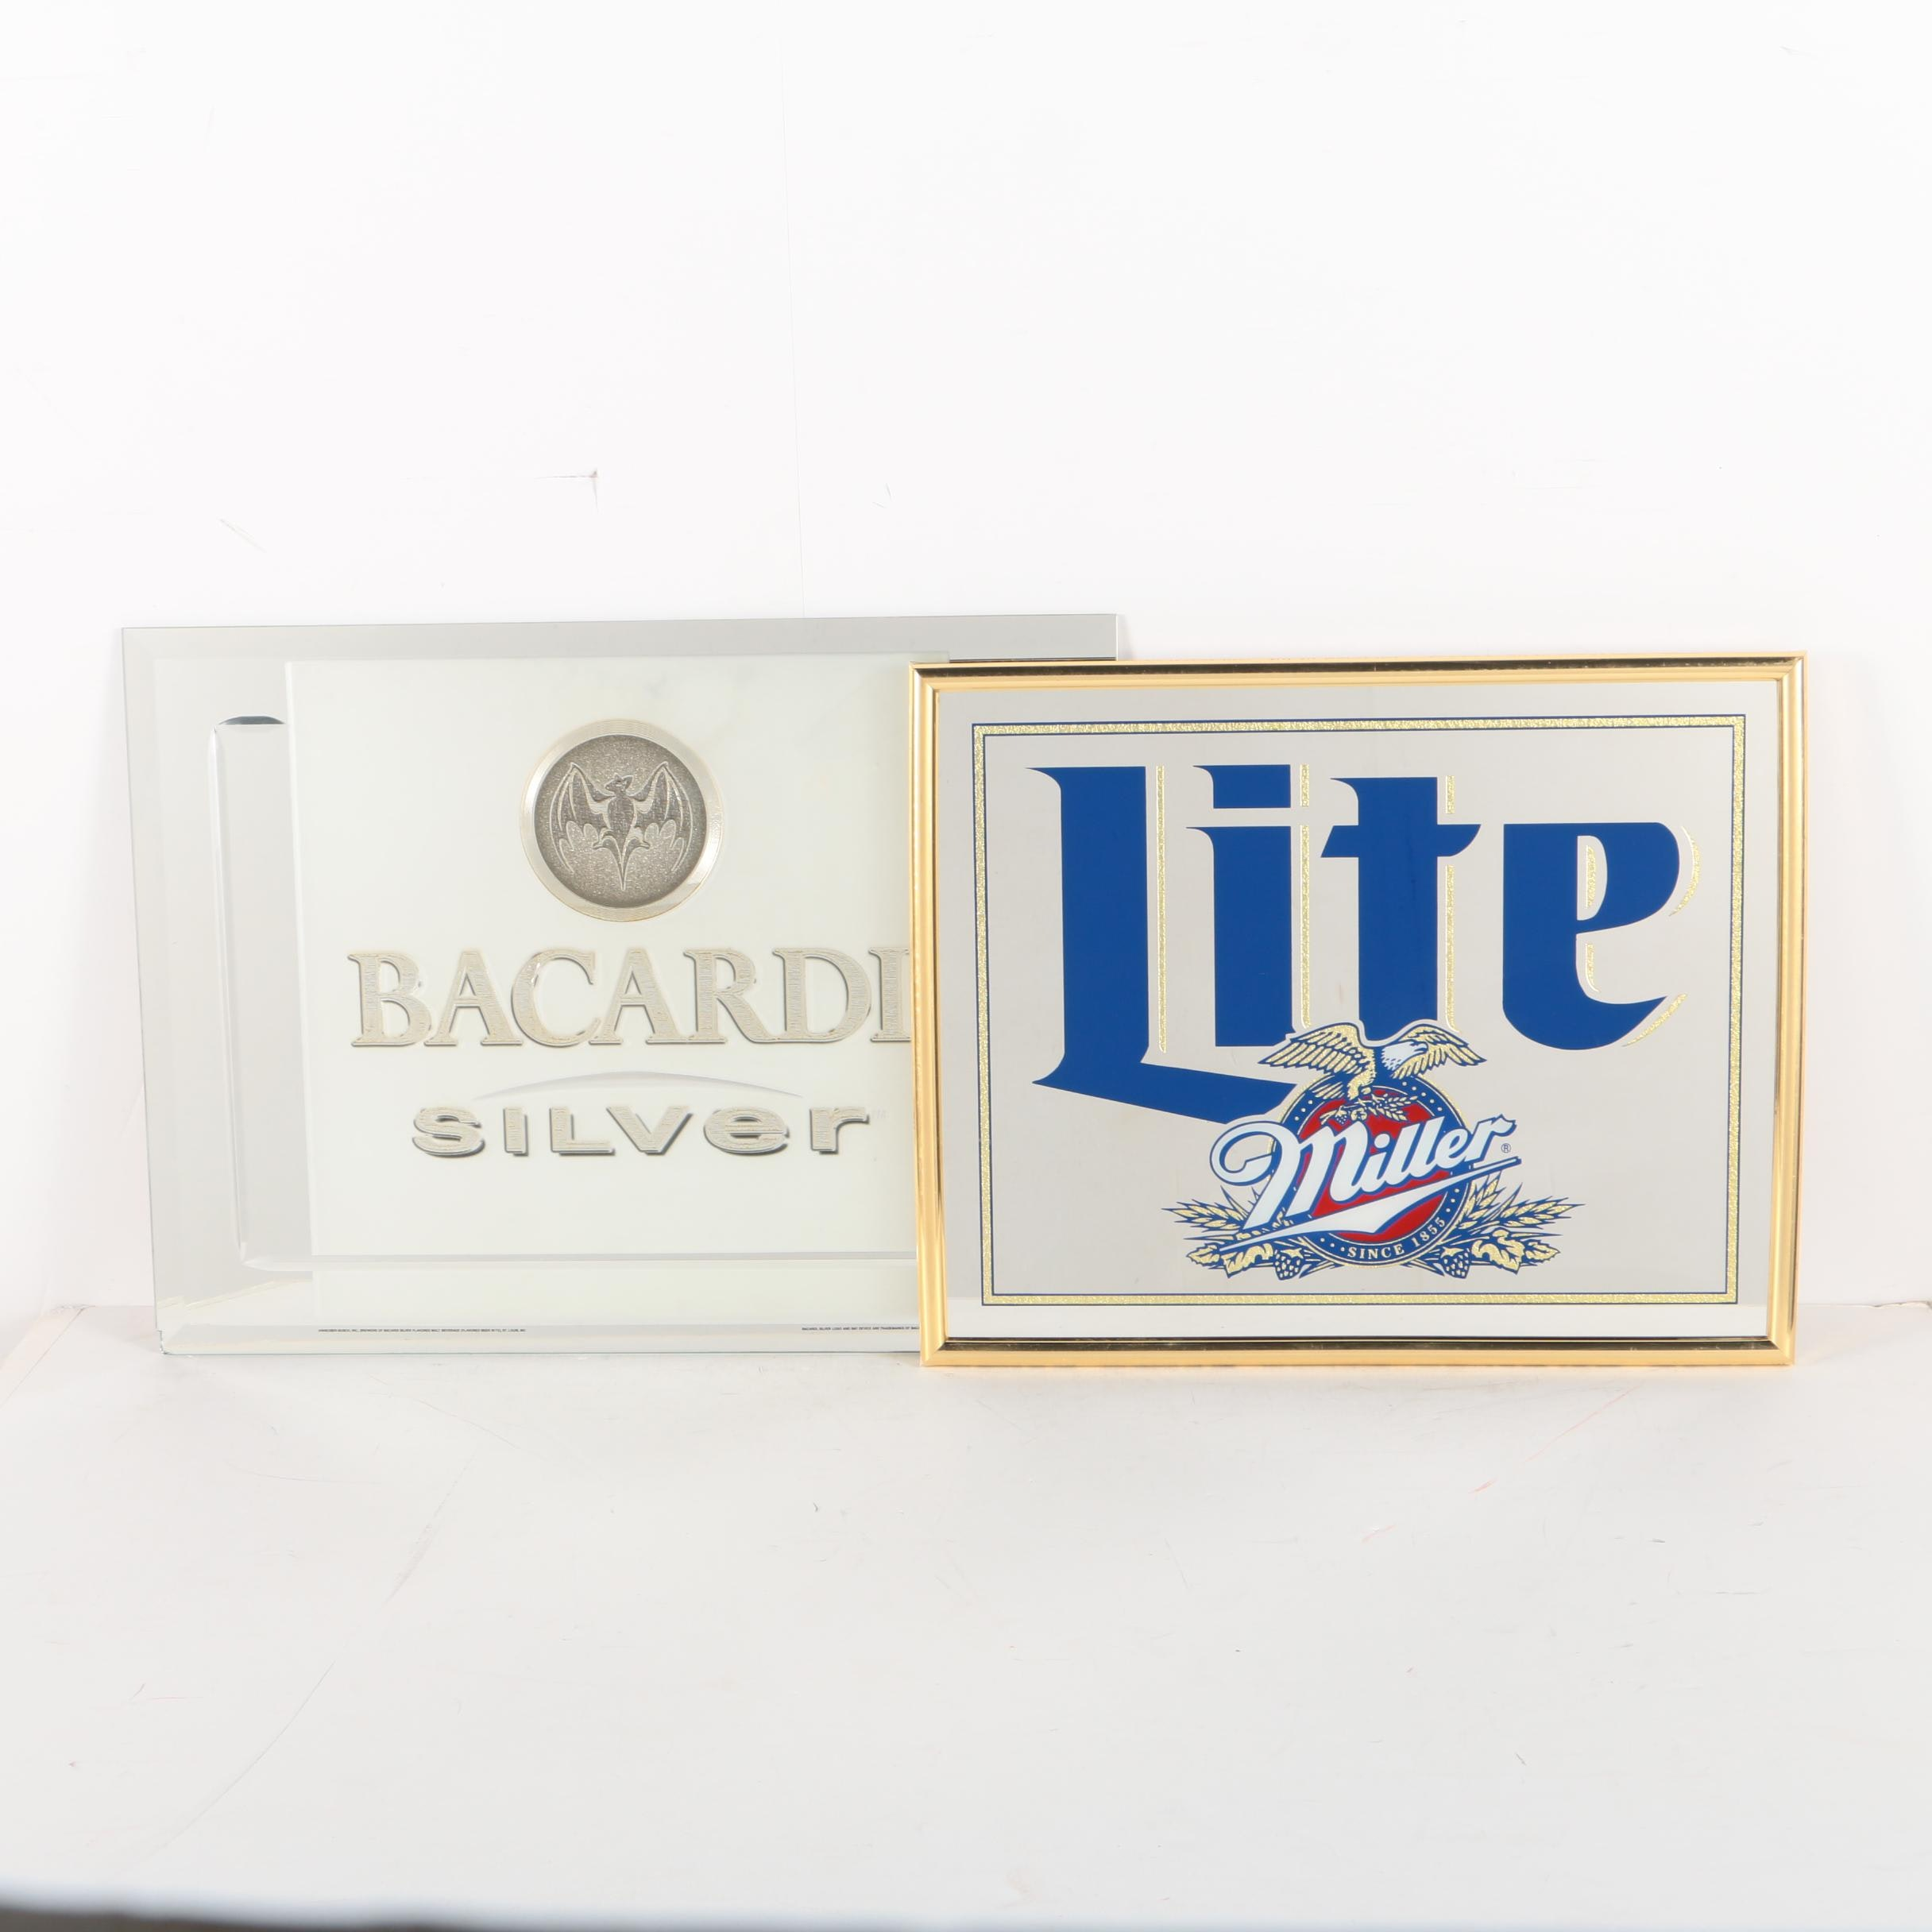 Bacardi Silver and Miller Lite Mirrored Signs